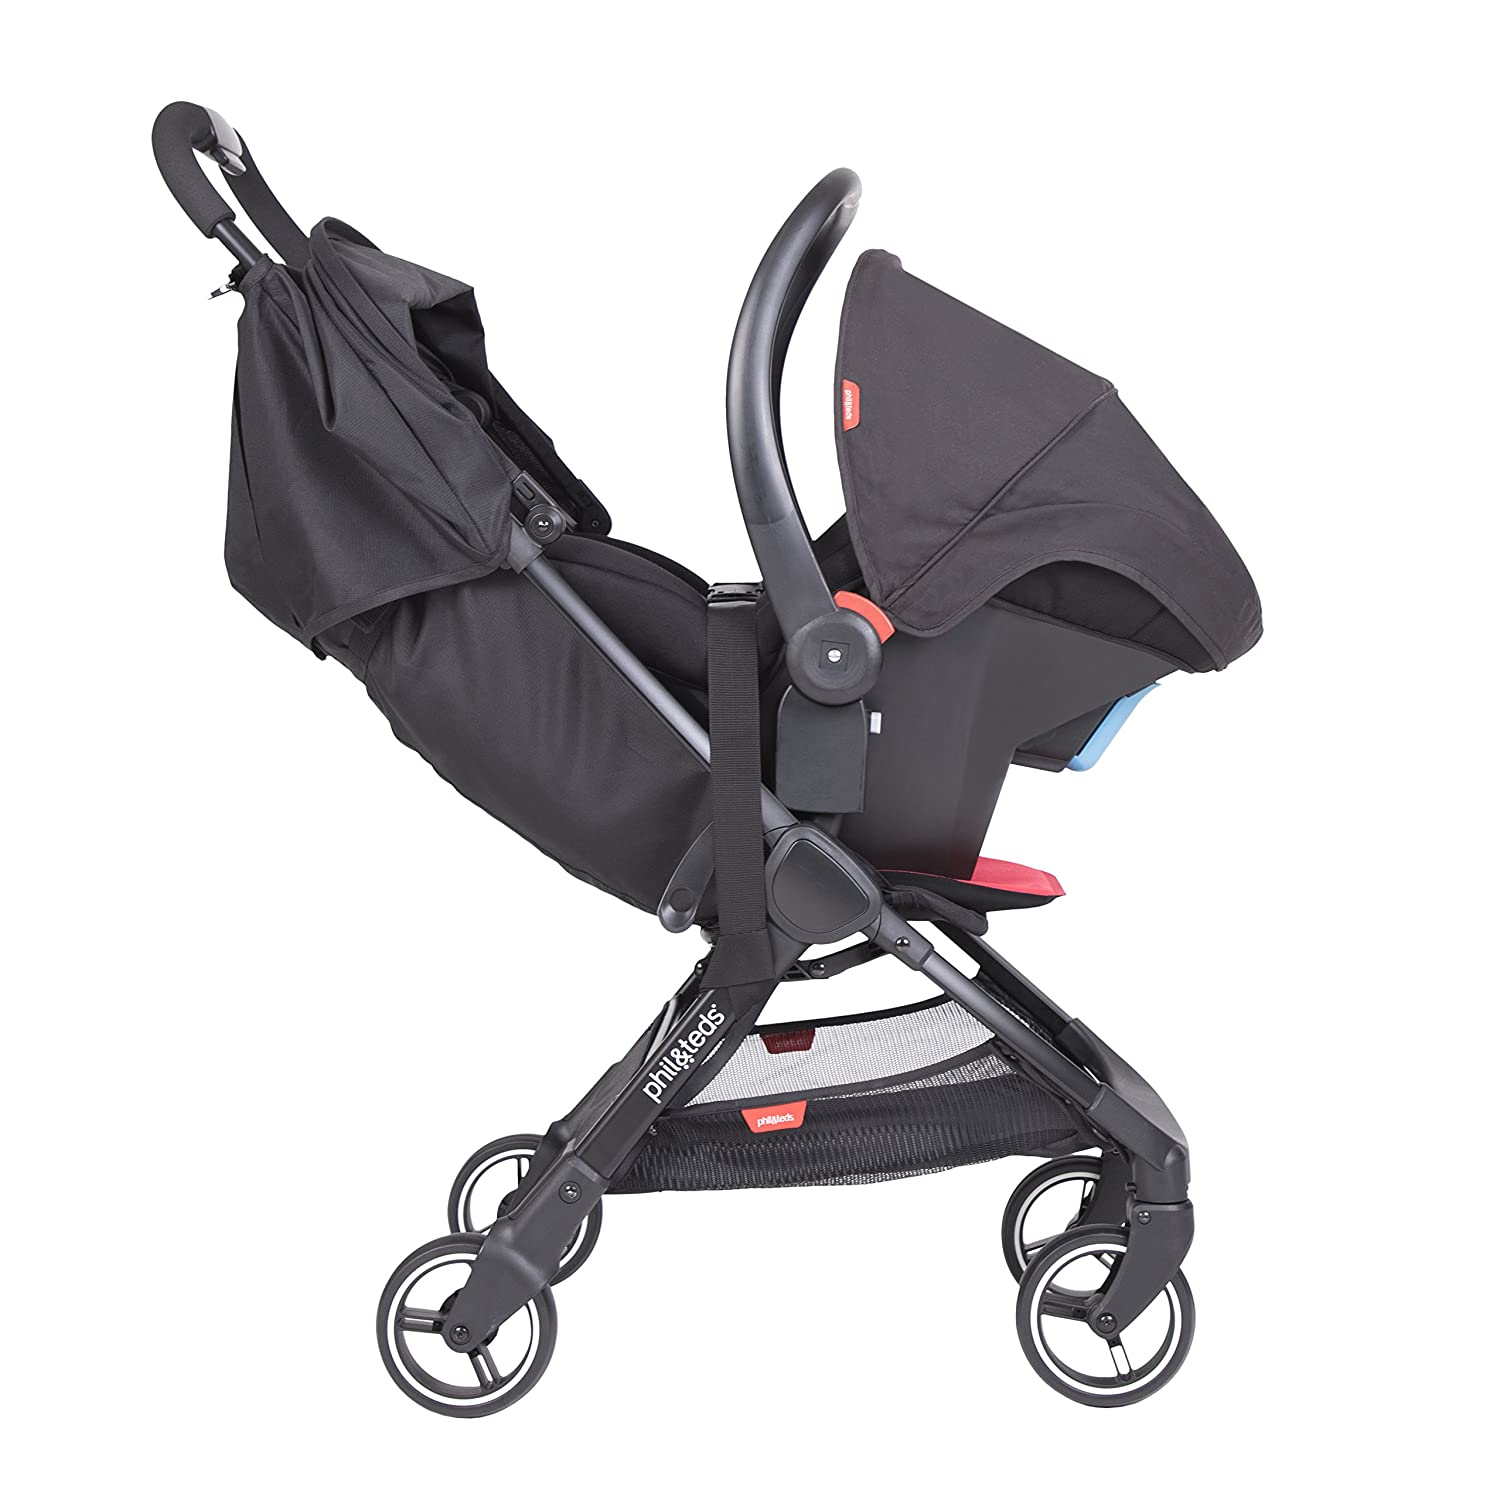 ... Light (11lbs) - Compact, One Hand Stand Fold - Removable Bumper Bar - Removable and Reversible Seat Liner - Travel System Ready - Full Suspension : Baby